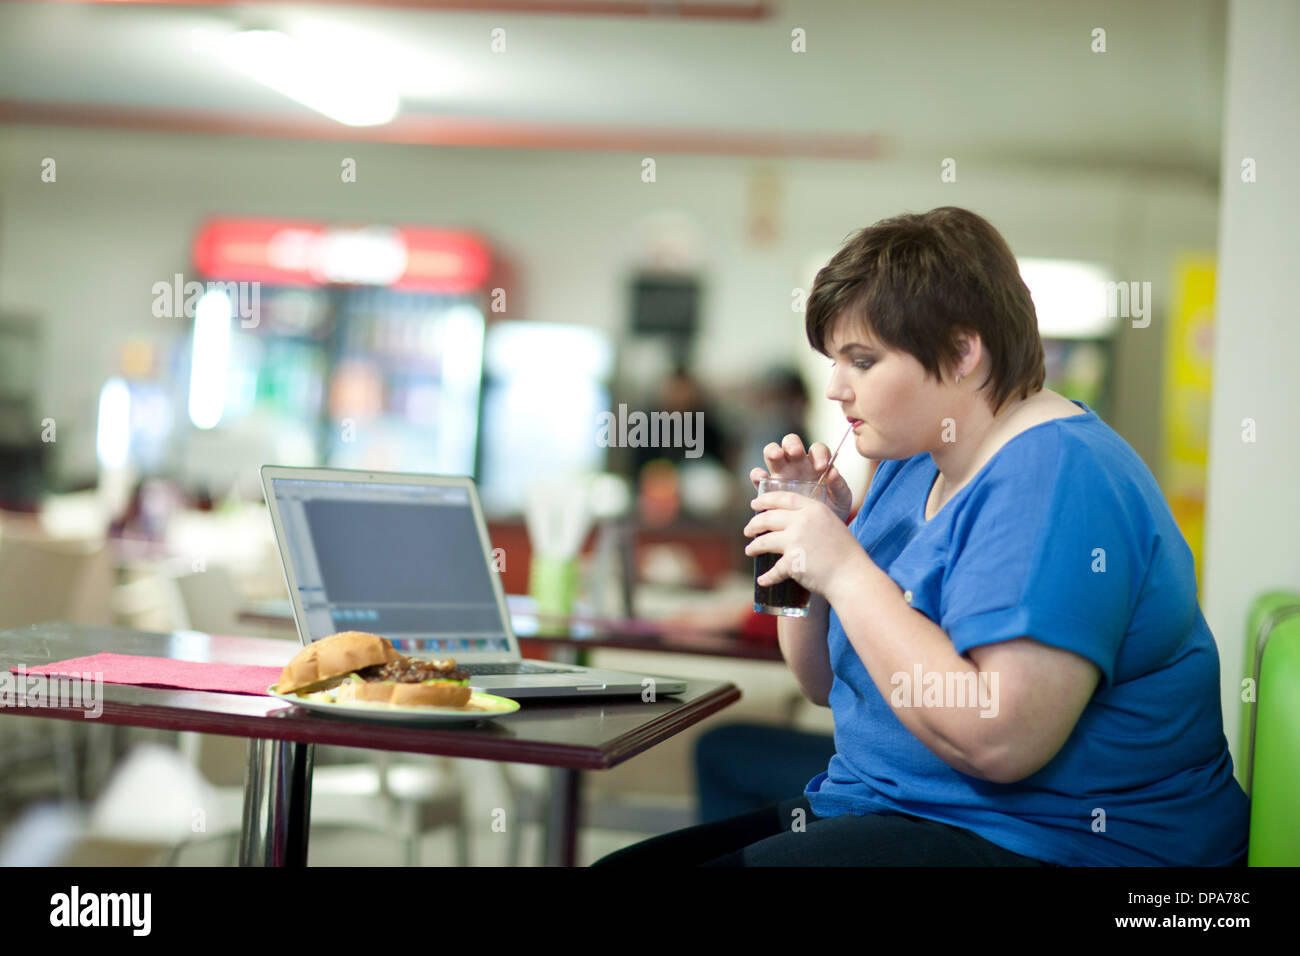 Young woman drinking coke in cafe - Stock Image